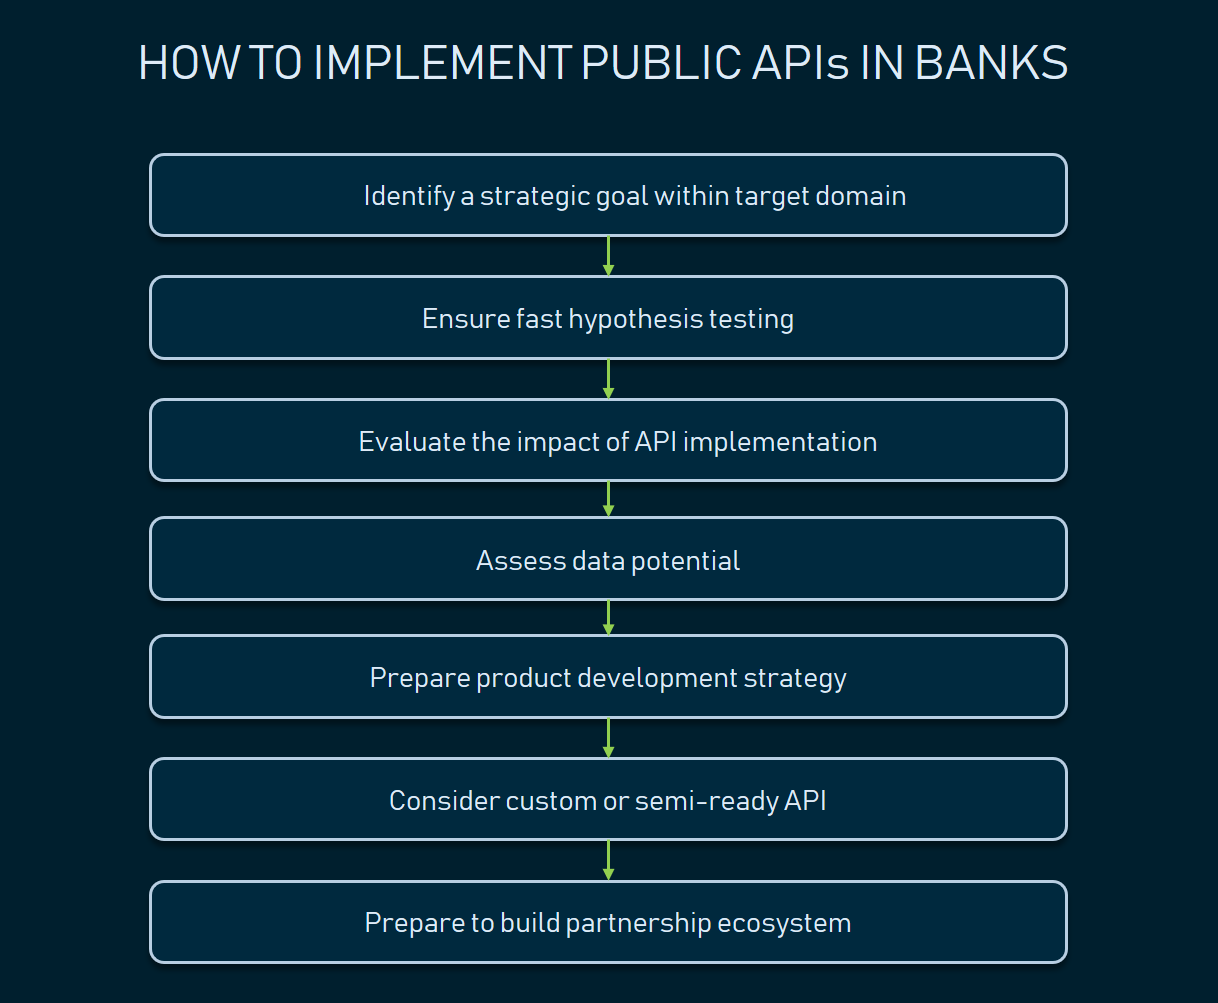 How to implement public APIs in banks